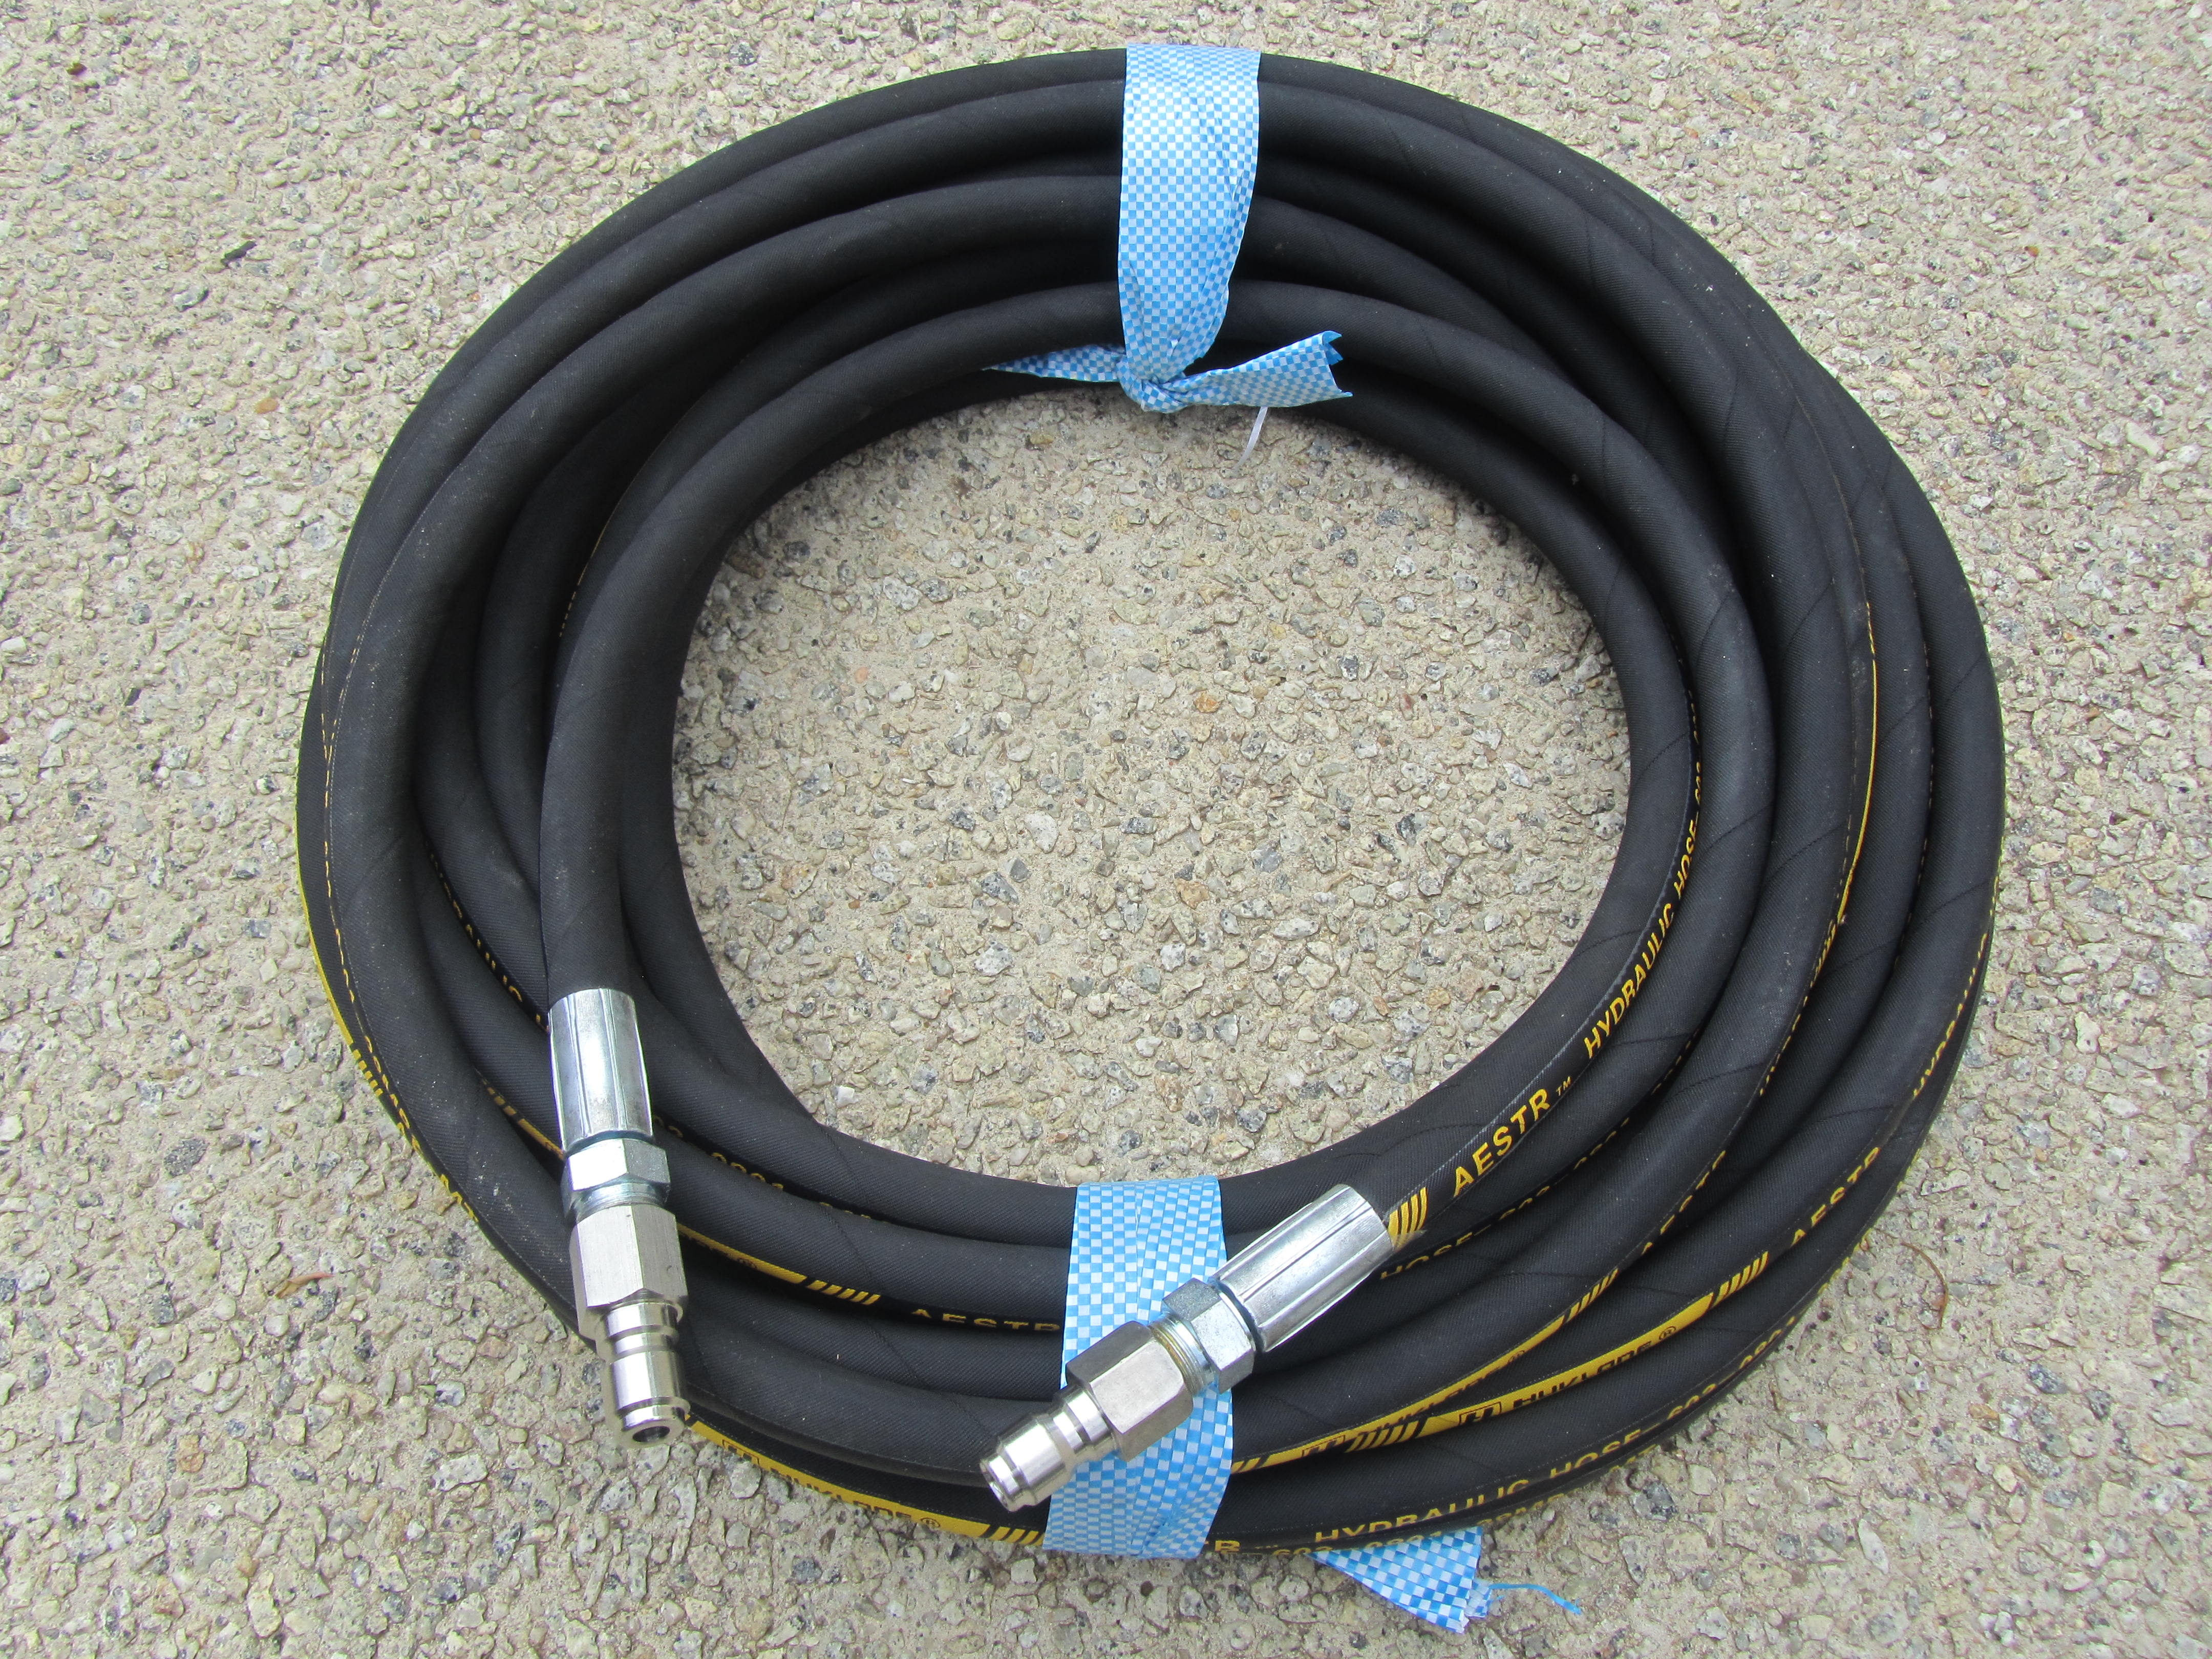 20 Metre Aestr Single Steel Braided High Pressure Hose with Quick Connection Fittings TO SUIT KARCHER